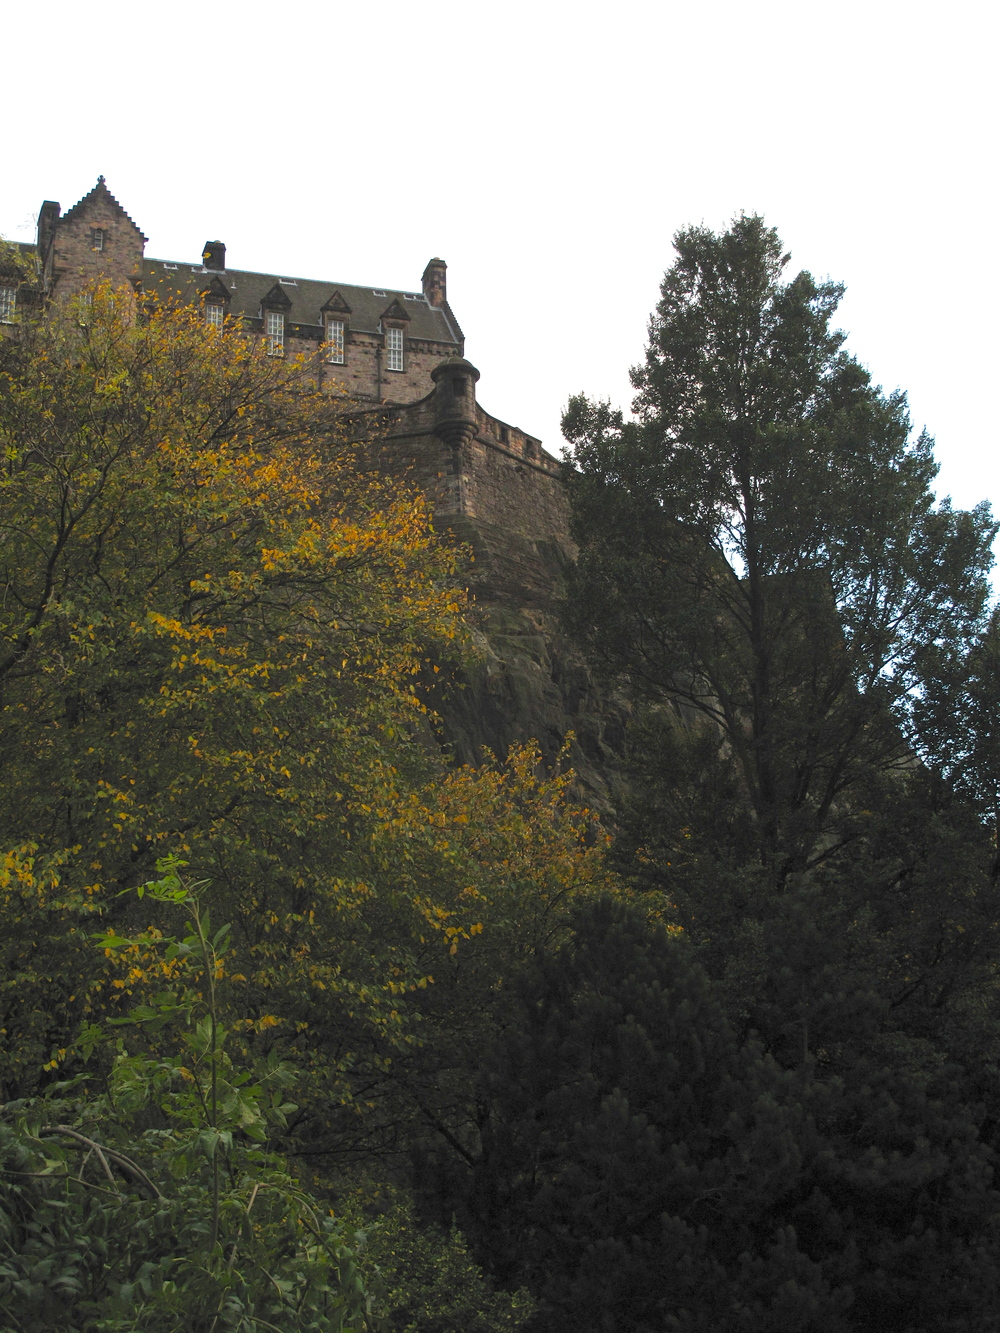 Edinburgh Castle seen from Princes Street Gardens - at dusk in autumn.